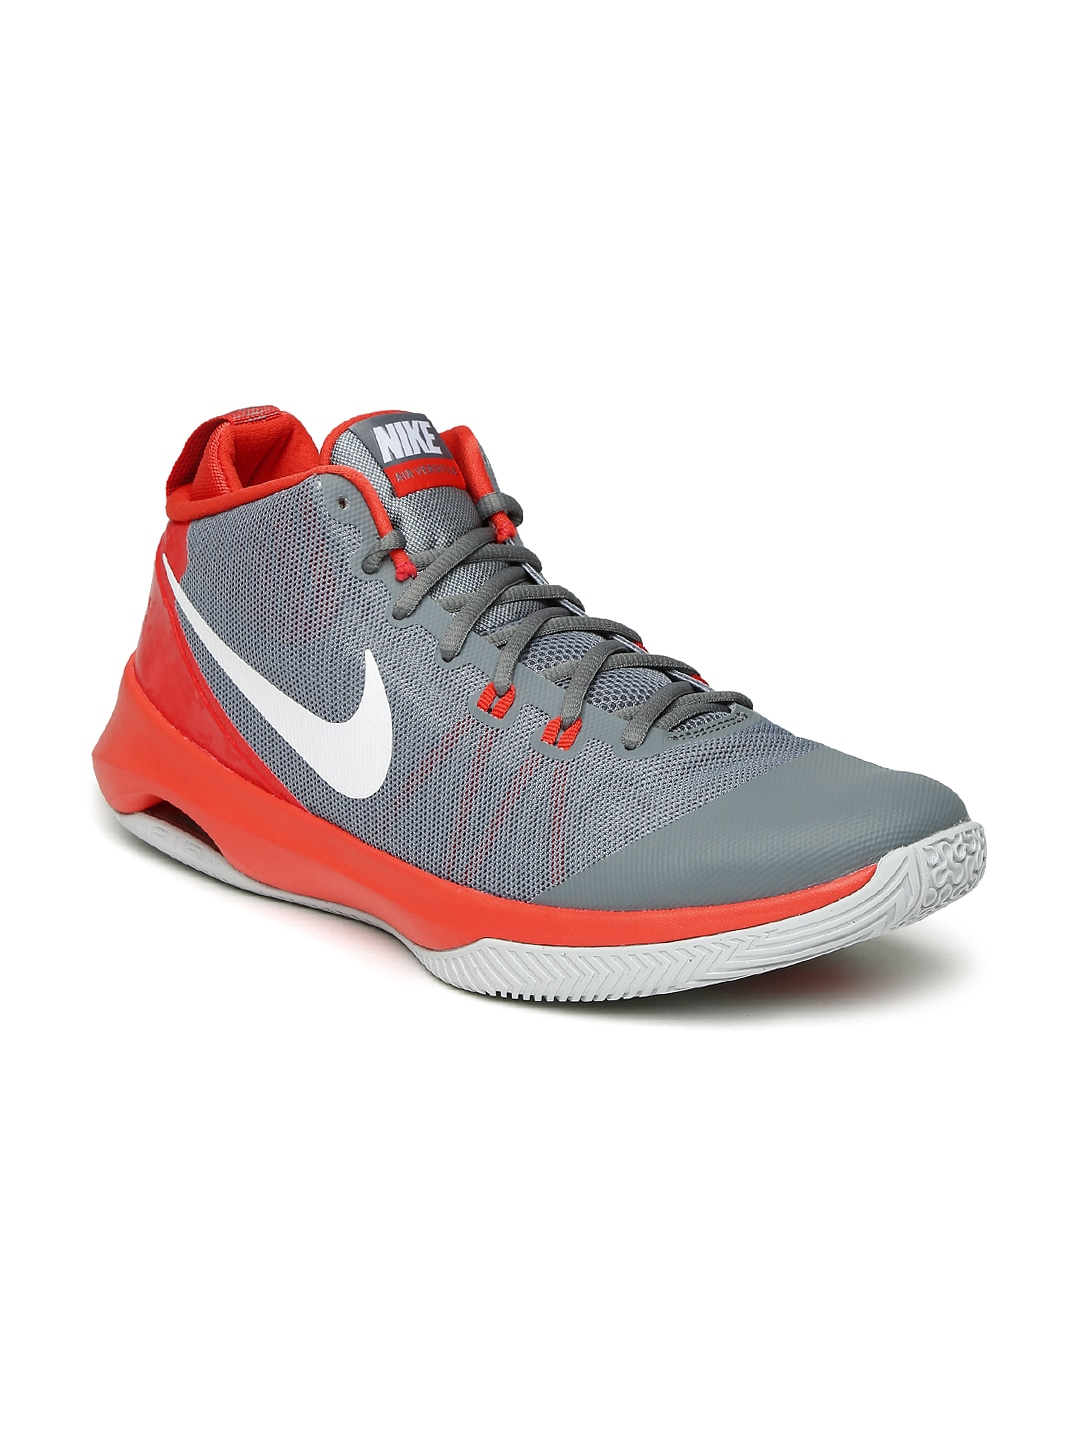 buy basketball shoes online select your shoes